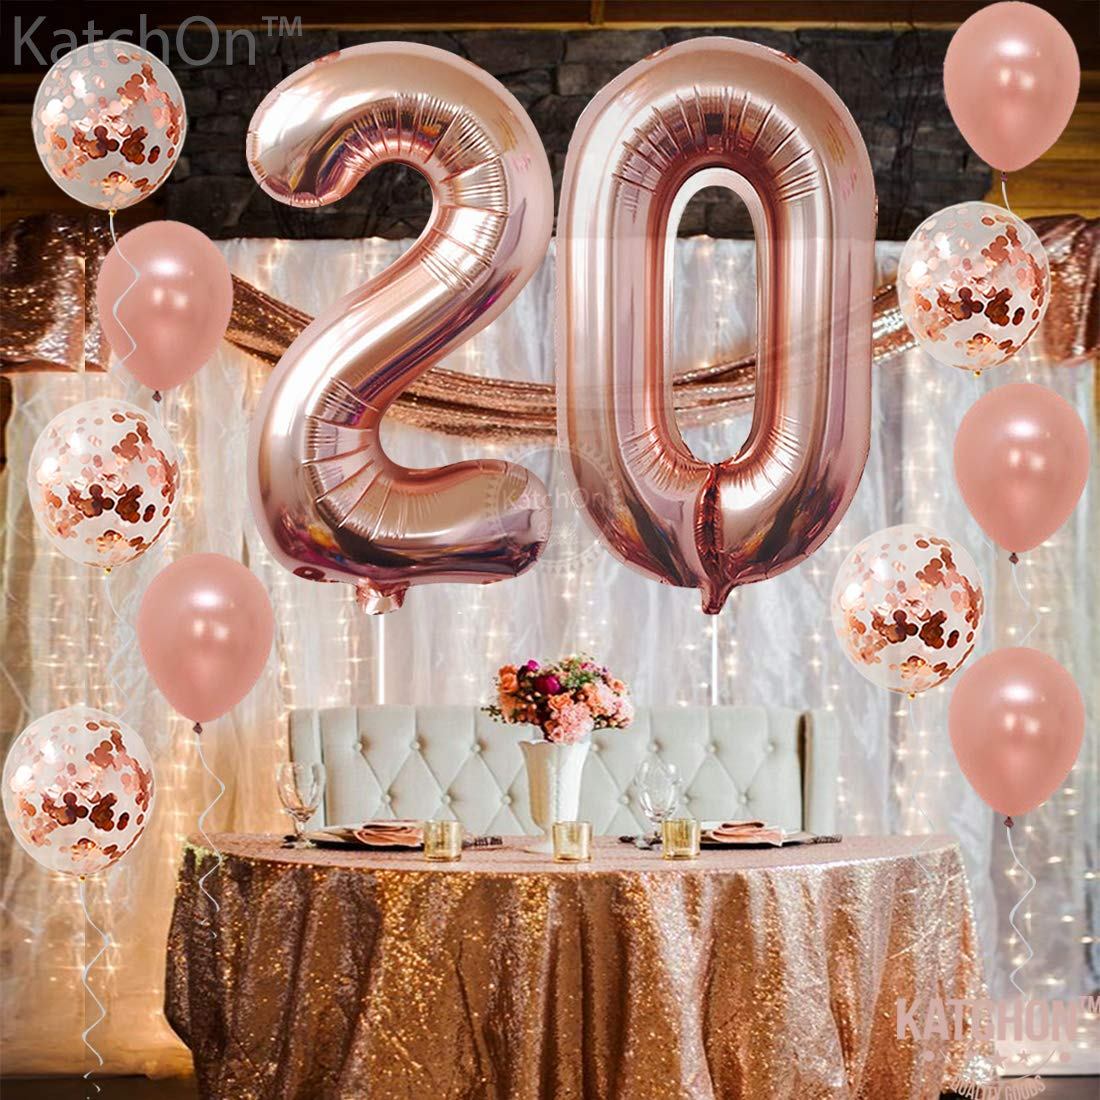 40 Inch Great 20th Birthday Party Decorations| 20 Year Old Rose Gold Party Supplies KatchOn 2 and 0 Mylar Rose Gold Balloons Large Rose Gold 20 Number Balloons Extra Pack of 10 Latex Baloons 12 Inch